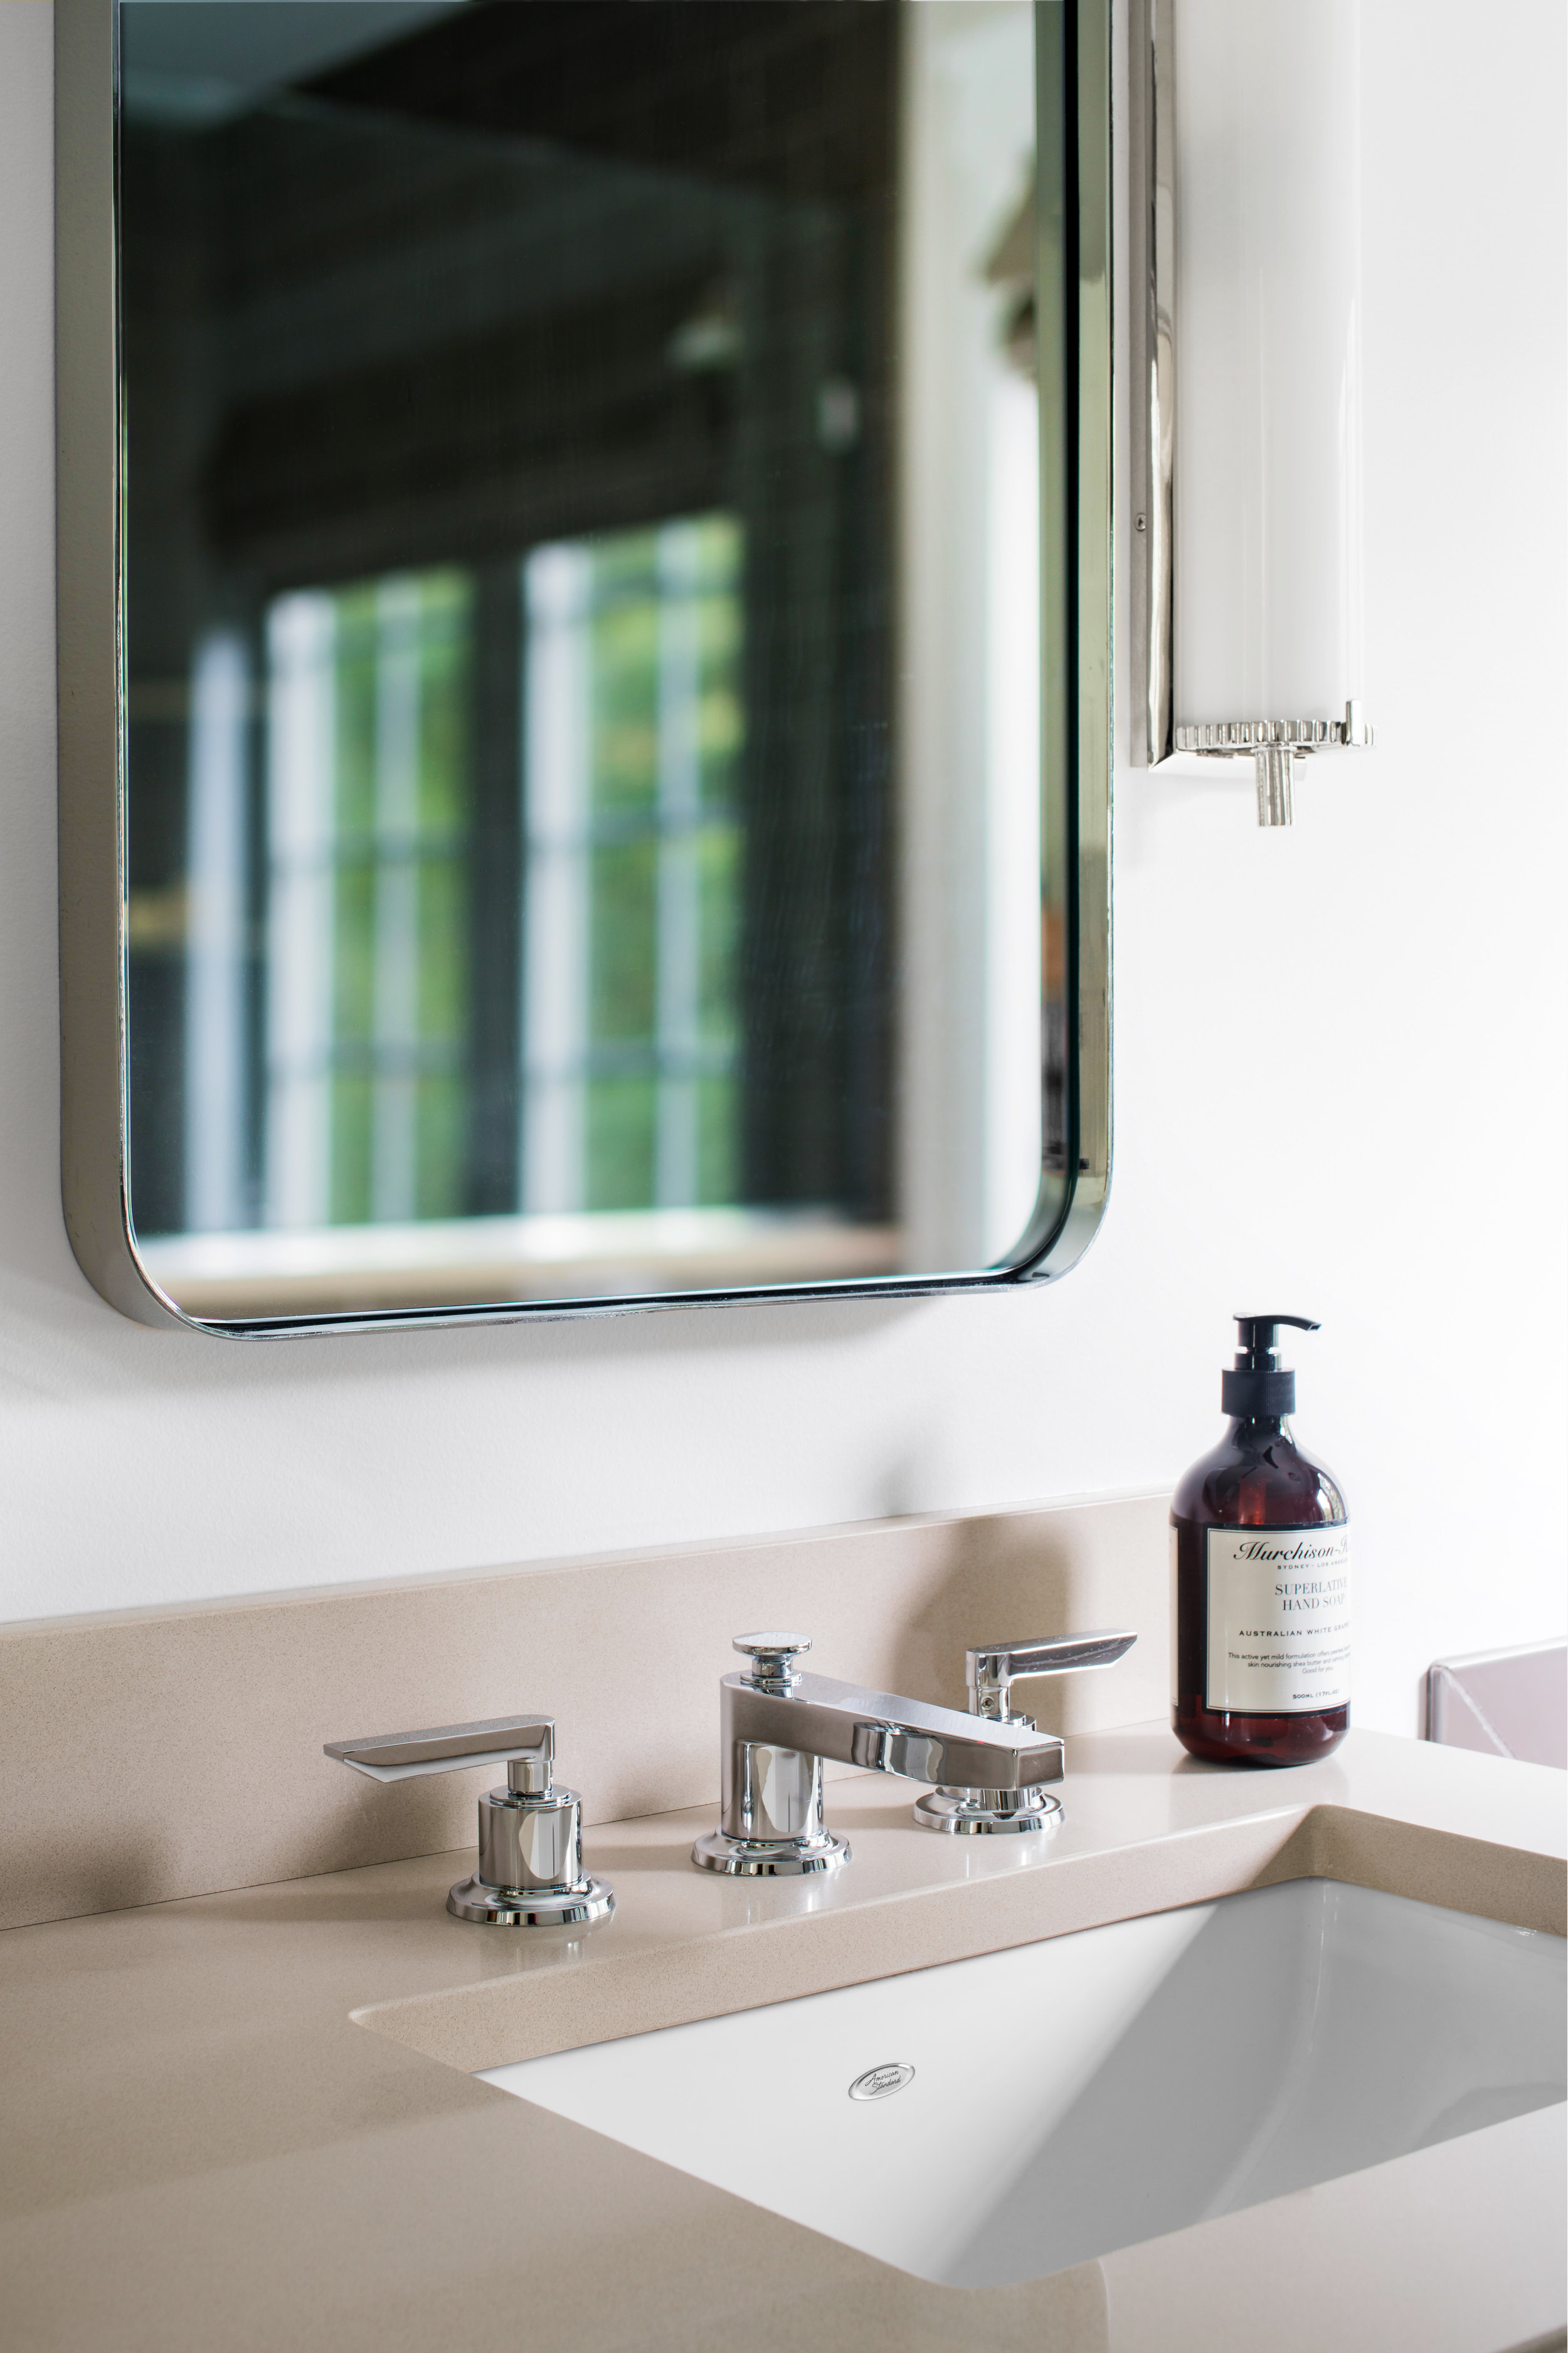 AFTER: Curved edge chrome mirrors with transitional California Faucets are a perfect balance.